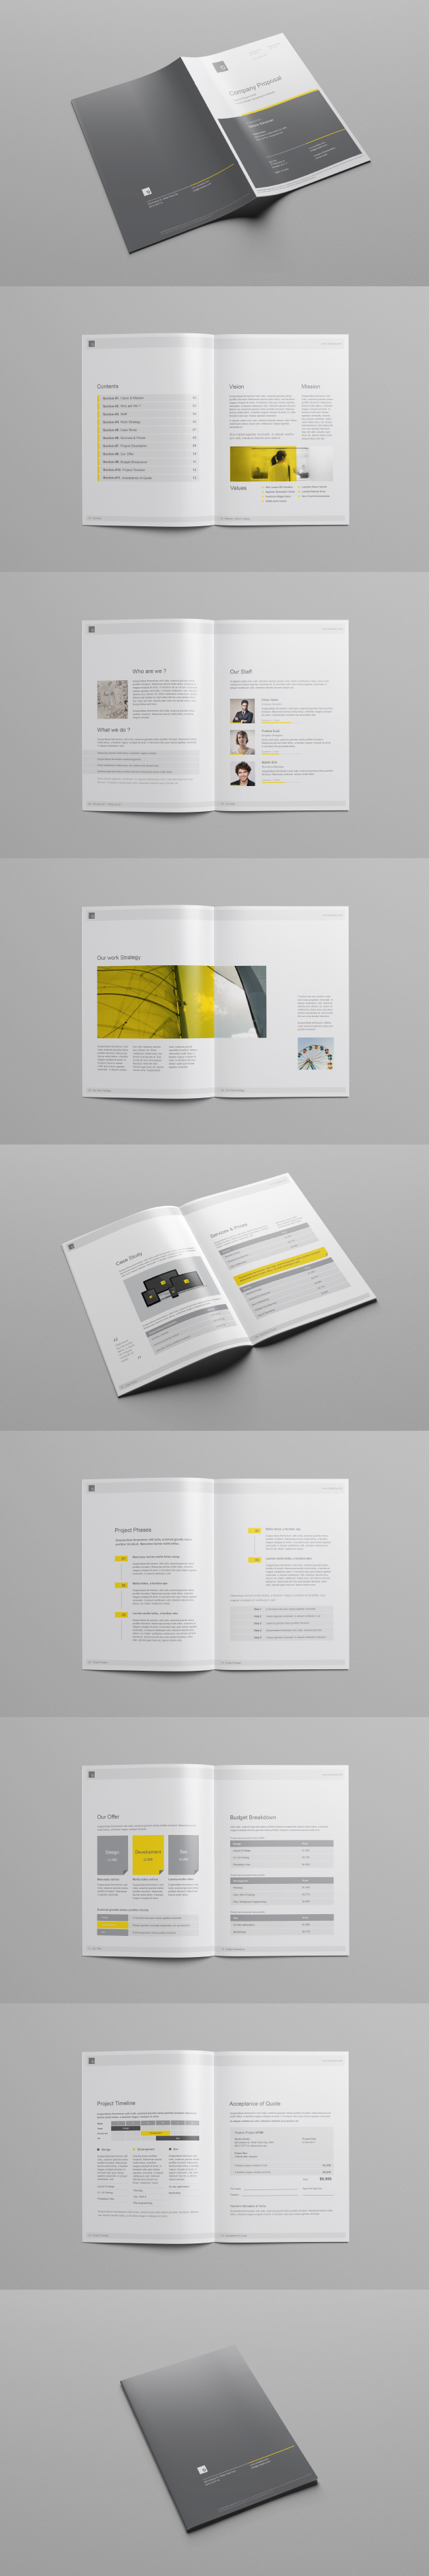 Company Proposal Template Design